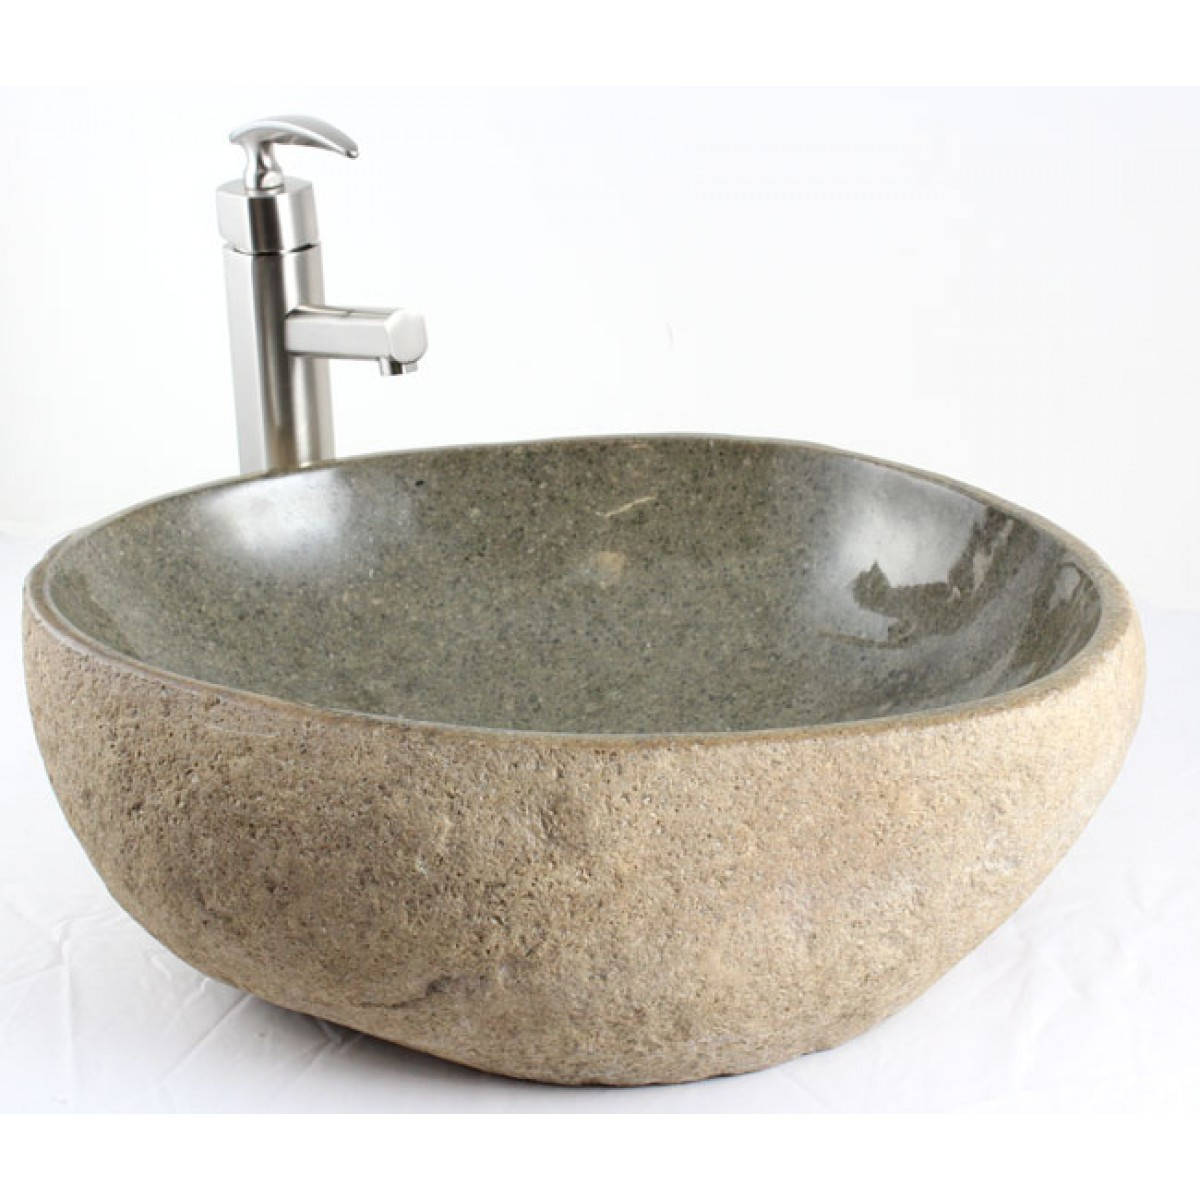 Natural River Rock Stone Bathroom Lavatory Vessel Sink